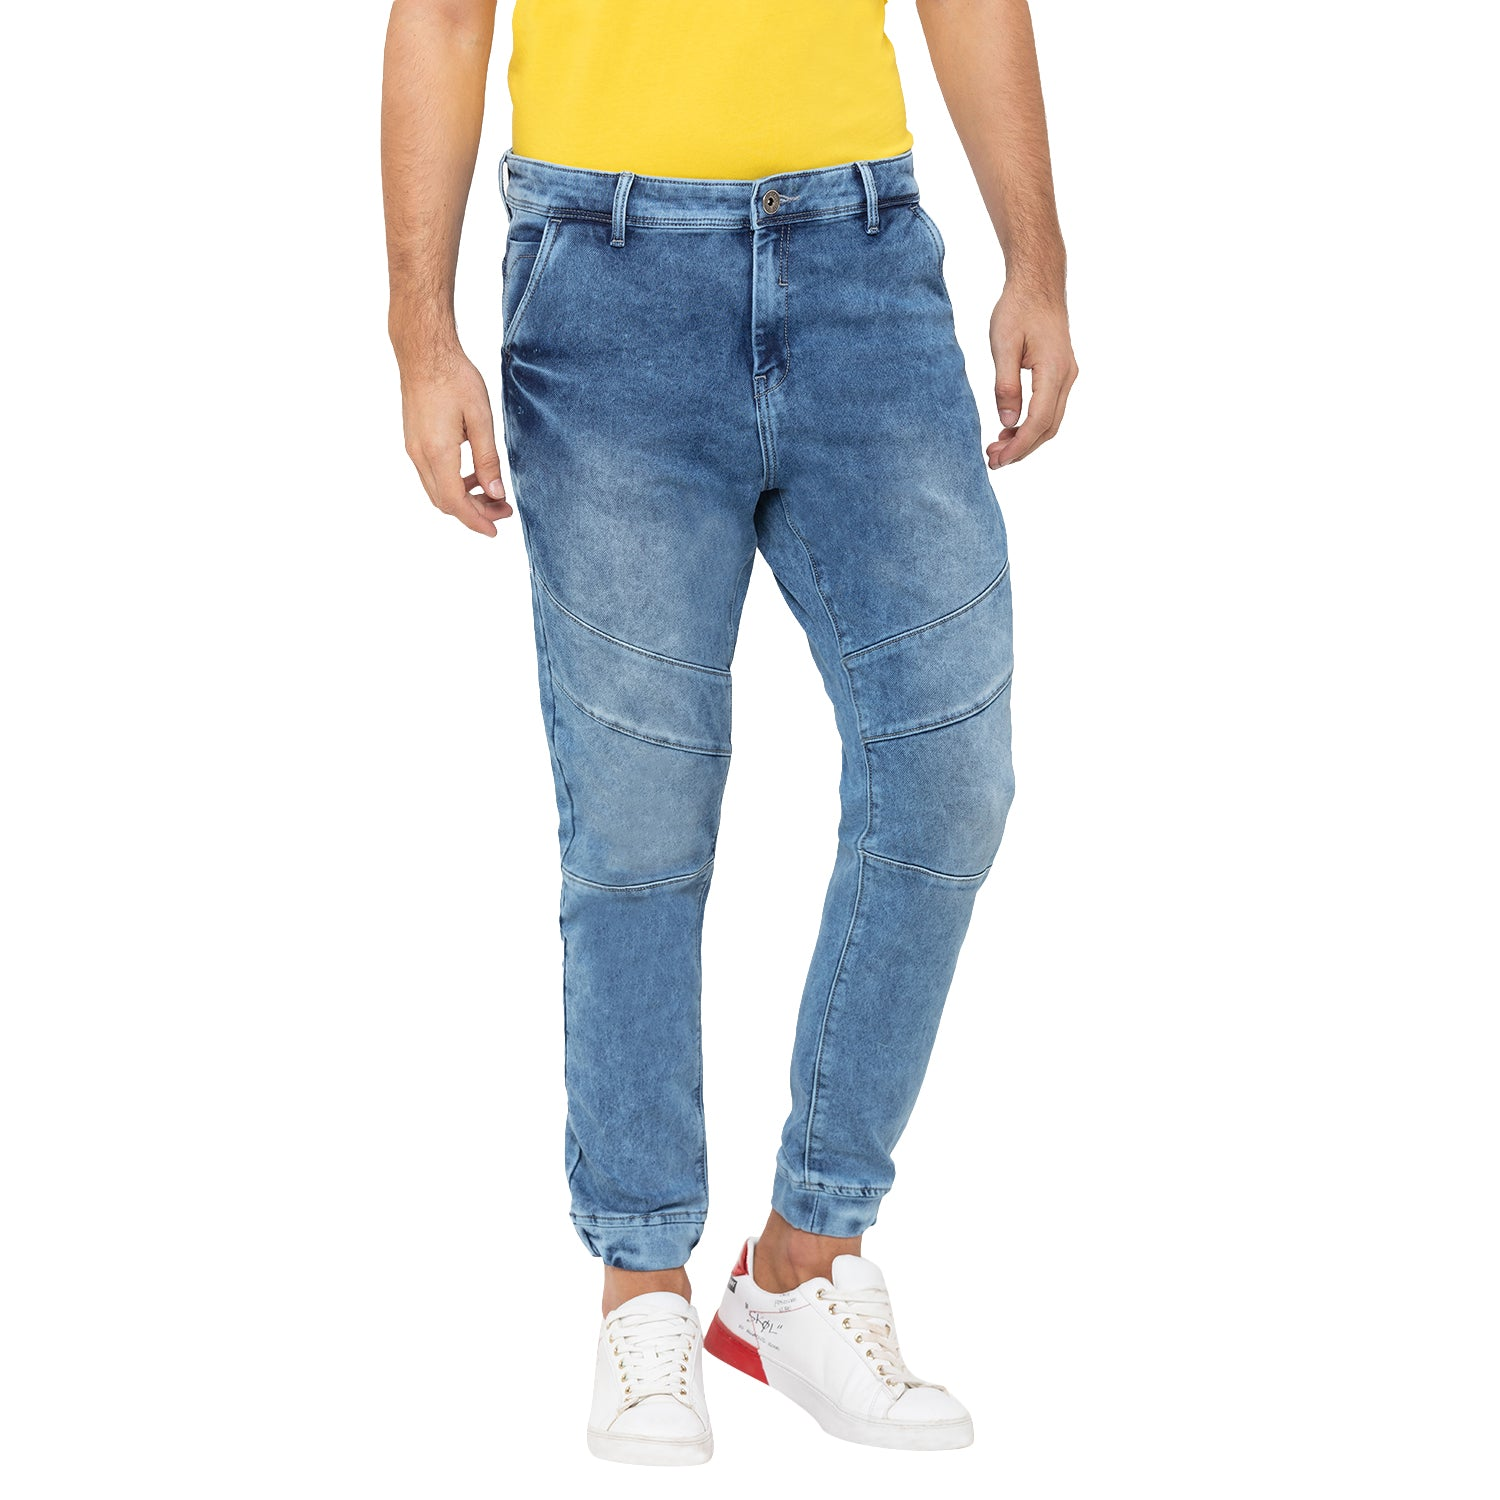 Globus Blue Washed Clean Look Jeans-6